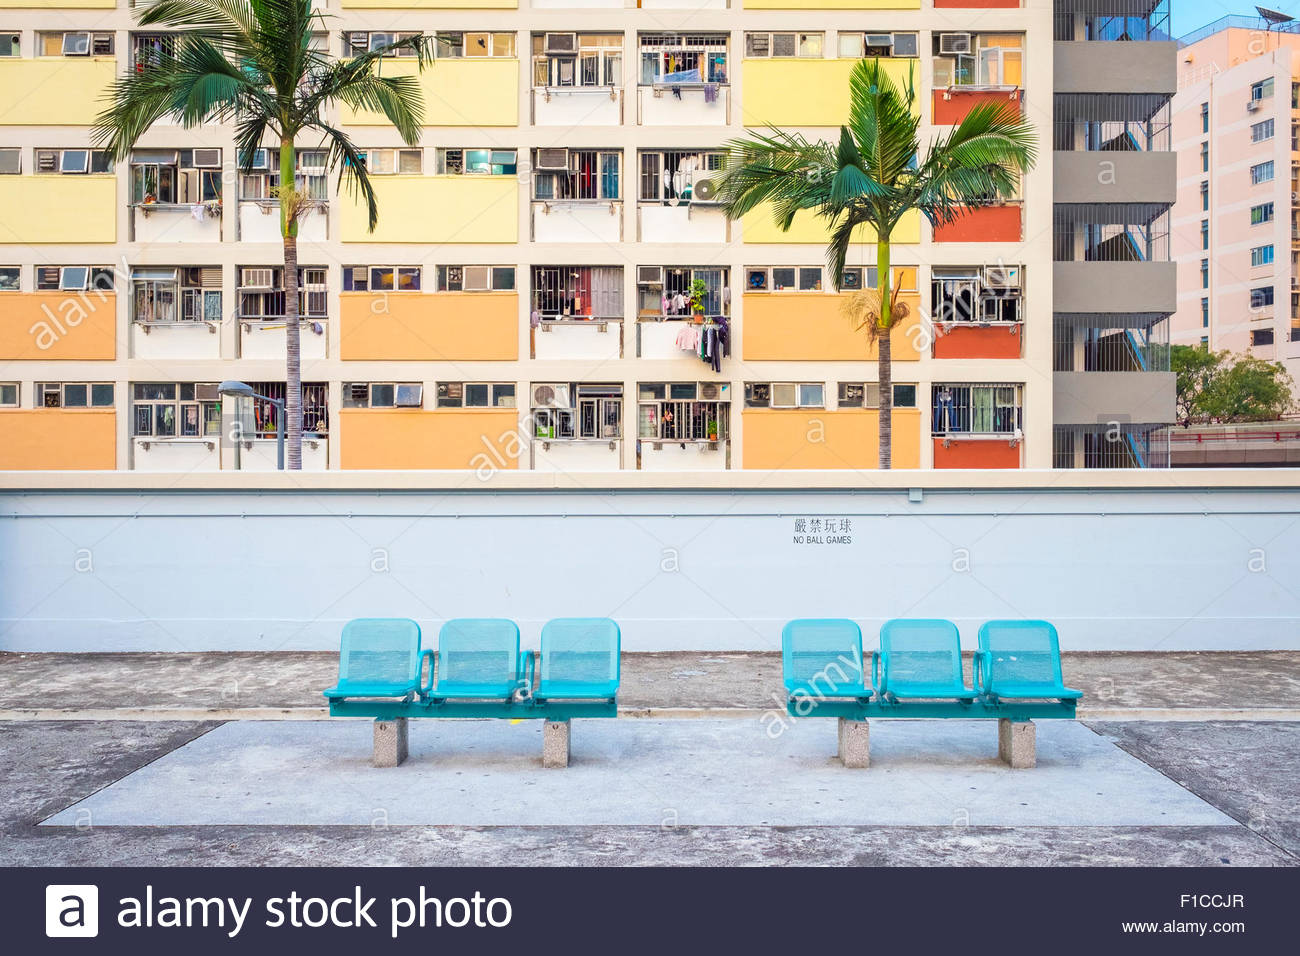 Empty chairs, Choi Hung Estate, one of the oldest public housing estates in Hong Kong, Wong Tai Sin District, Kowloon, - Stock Image